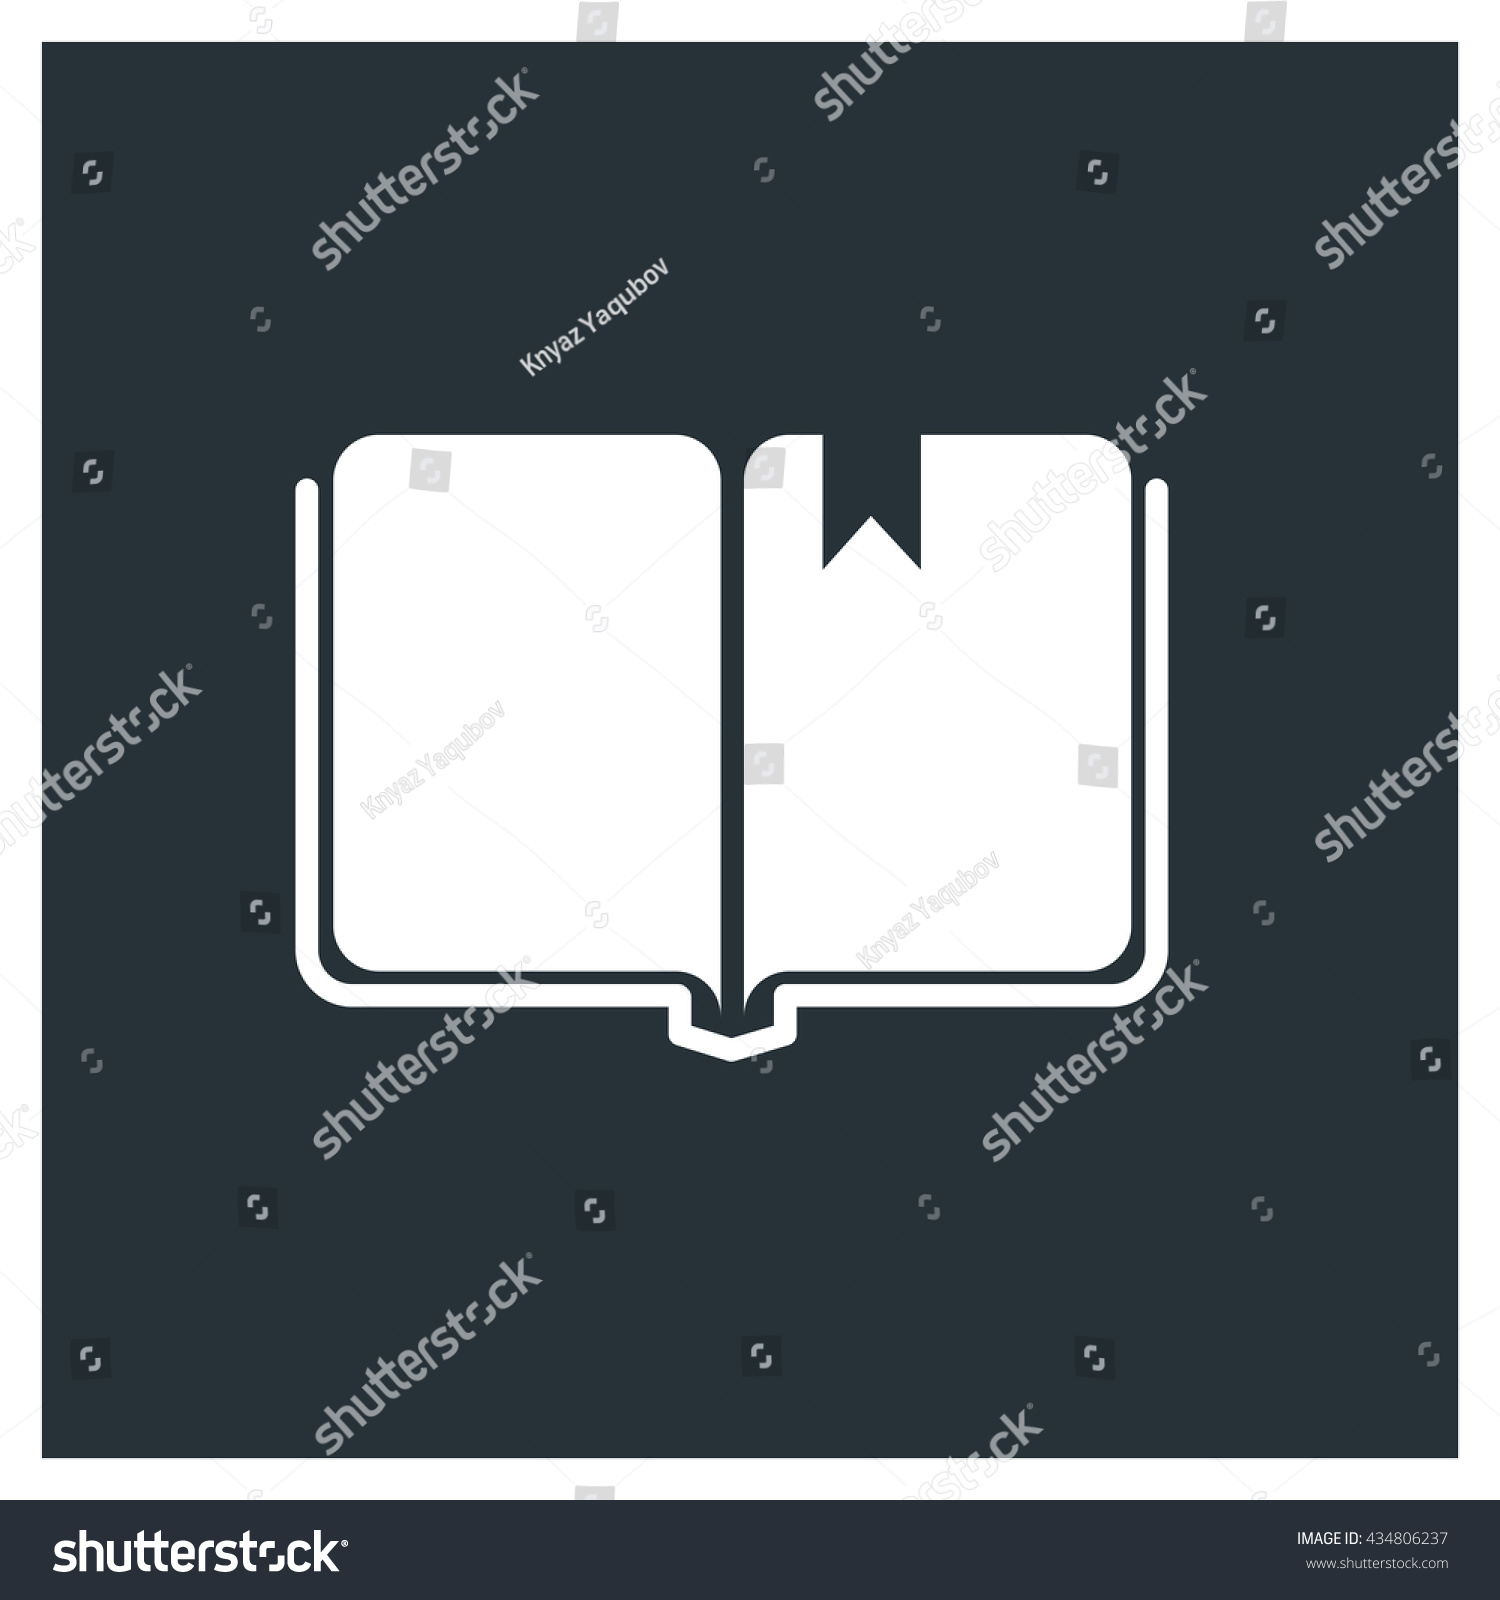 Open book Icon Open book Icon UI Open book Icon Vector Open book Icon Eps Open book Icon Jpg Open book Icon Picture Open book Icon Flat Open book Icon App Open book Icon Web